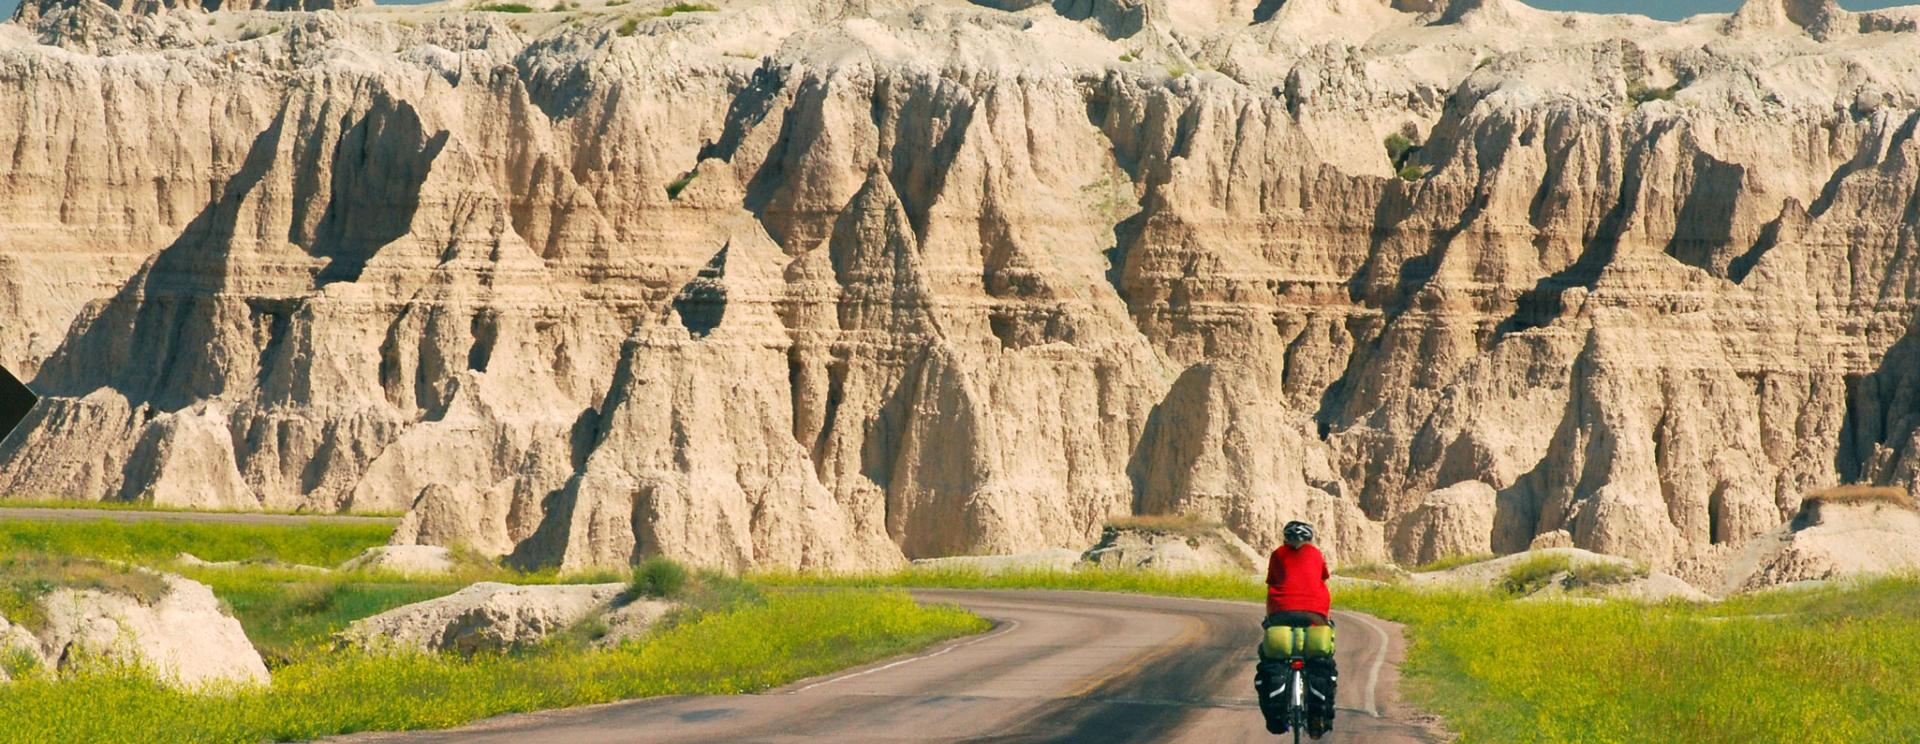 Bicycling the Badlands